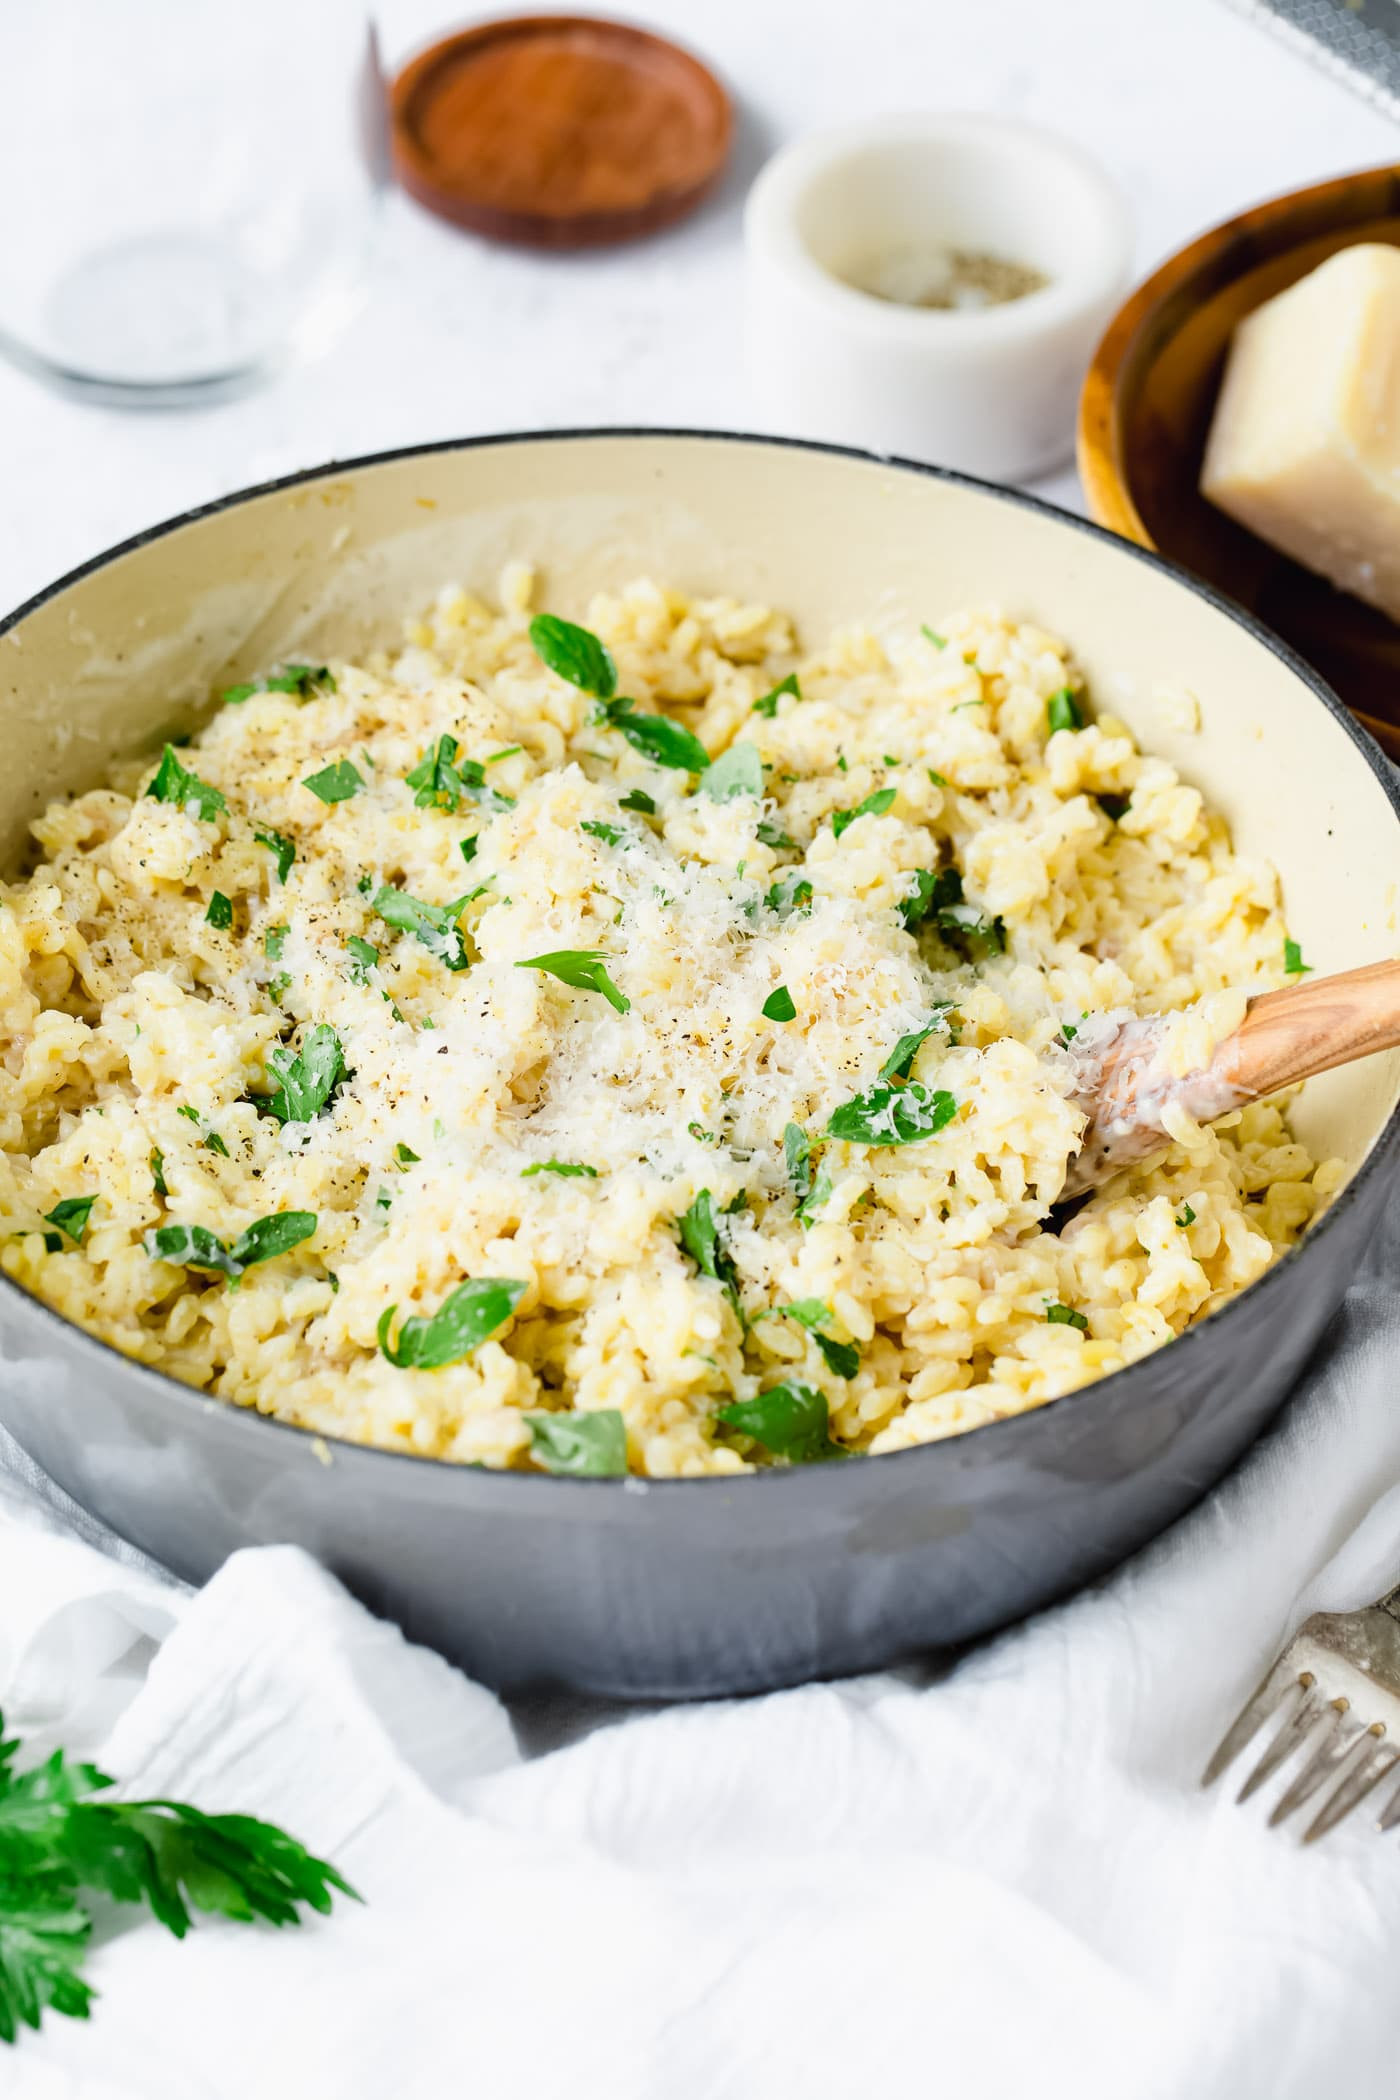 A bowl of creamy garlic parmesan orzo. It has a creamy white sauce and freah thyme leaves over it. There is a fork next to it and small containers of ingredients in the background. The bowl is sitting on a white tea towel.